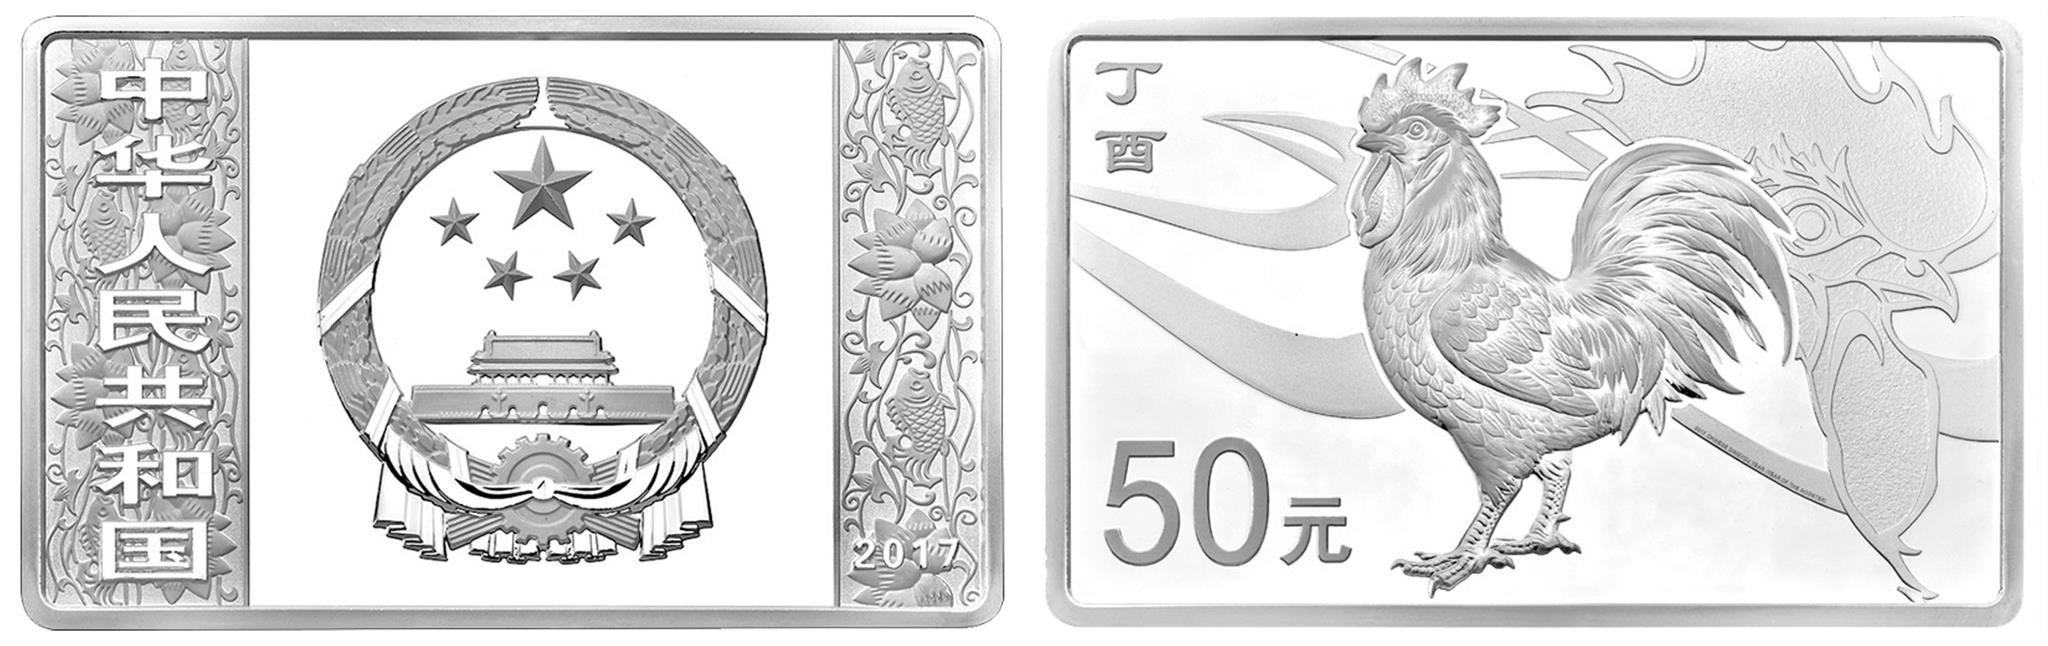 chine 2017 coq 5 oz rectangle